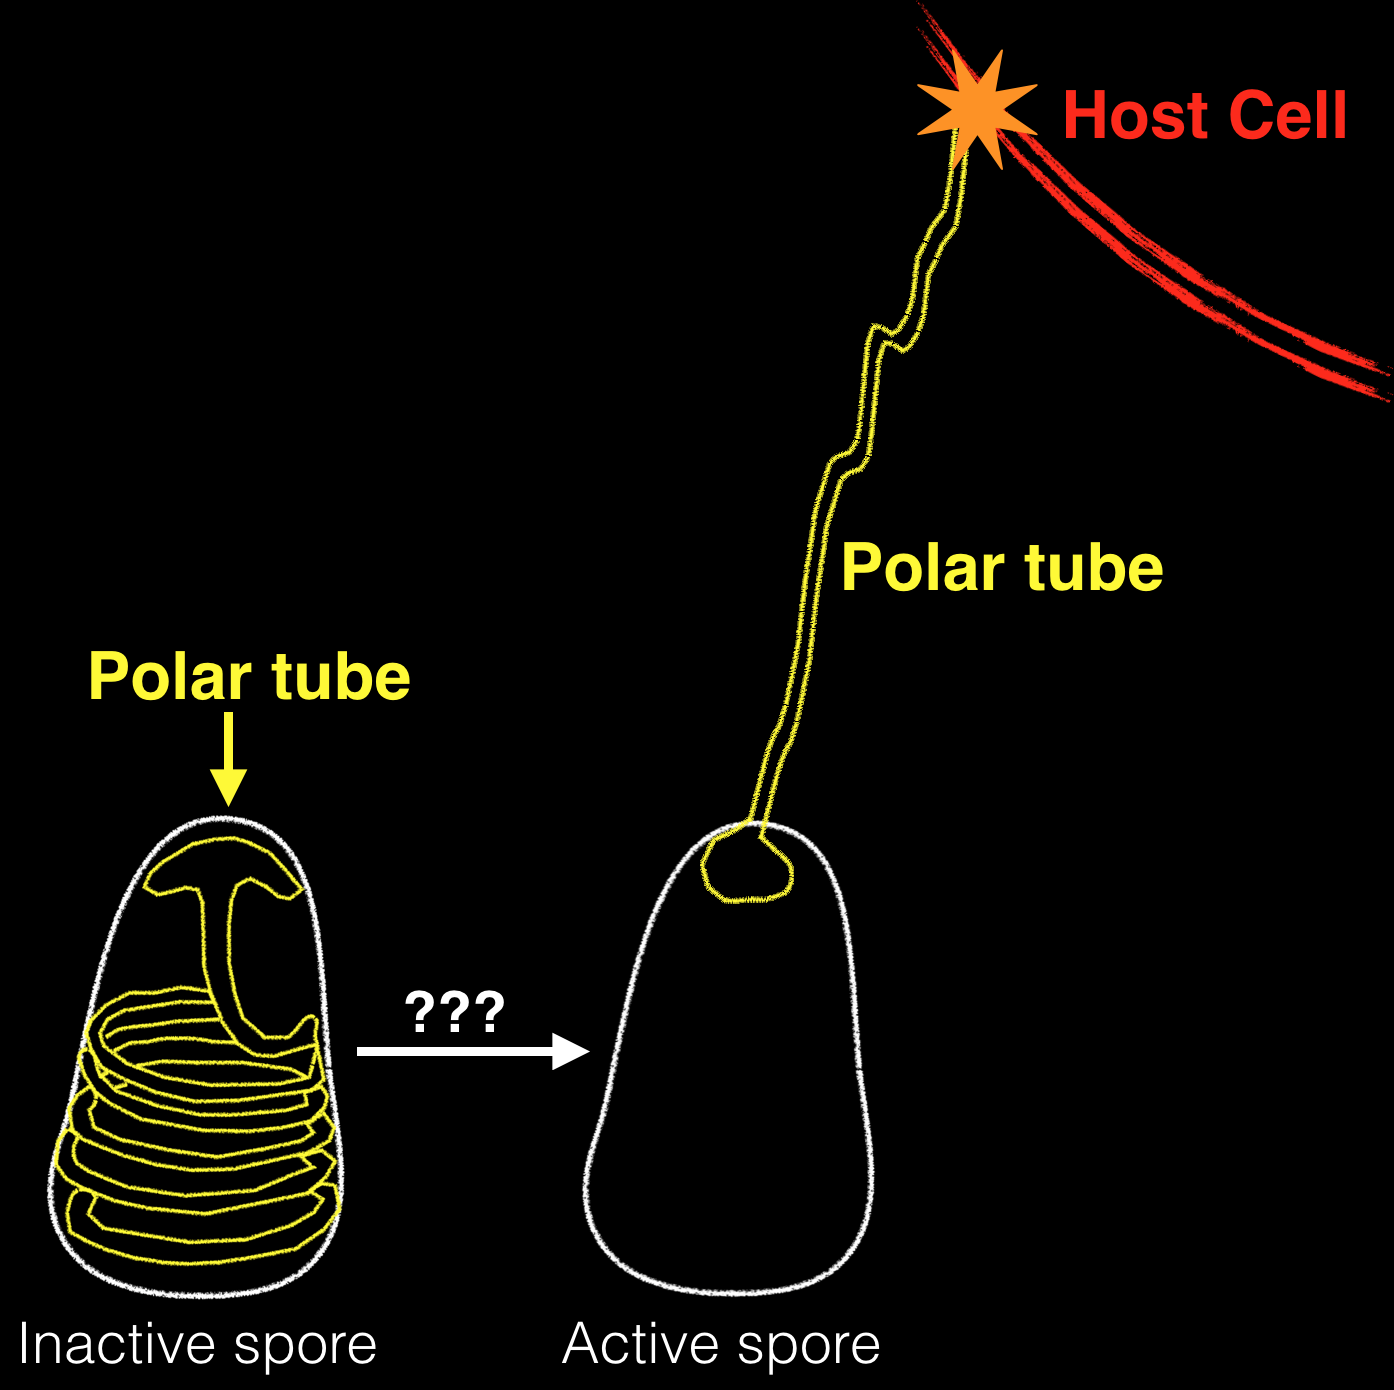 The polar tube mediates attachment to host cells and facilitates transfer of sporoplasm from the microsporidia spore to infect a target cell